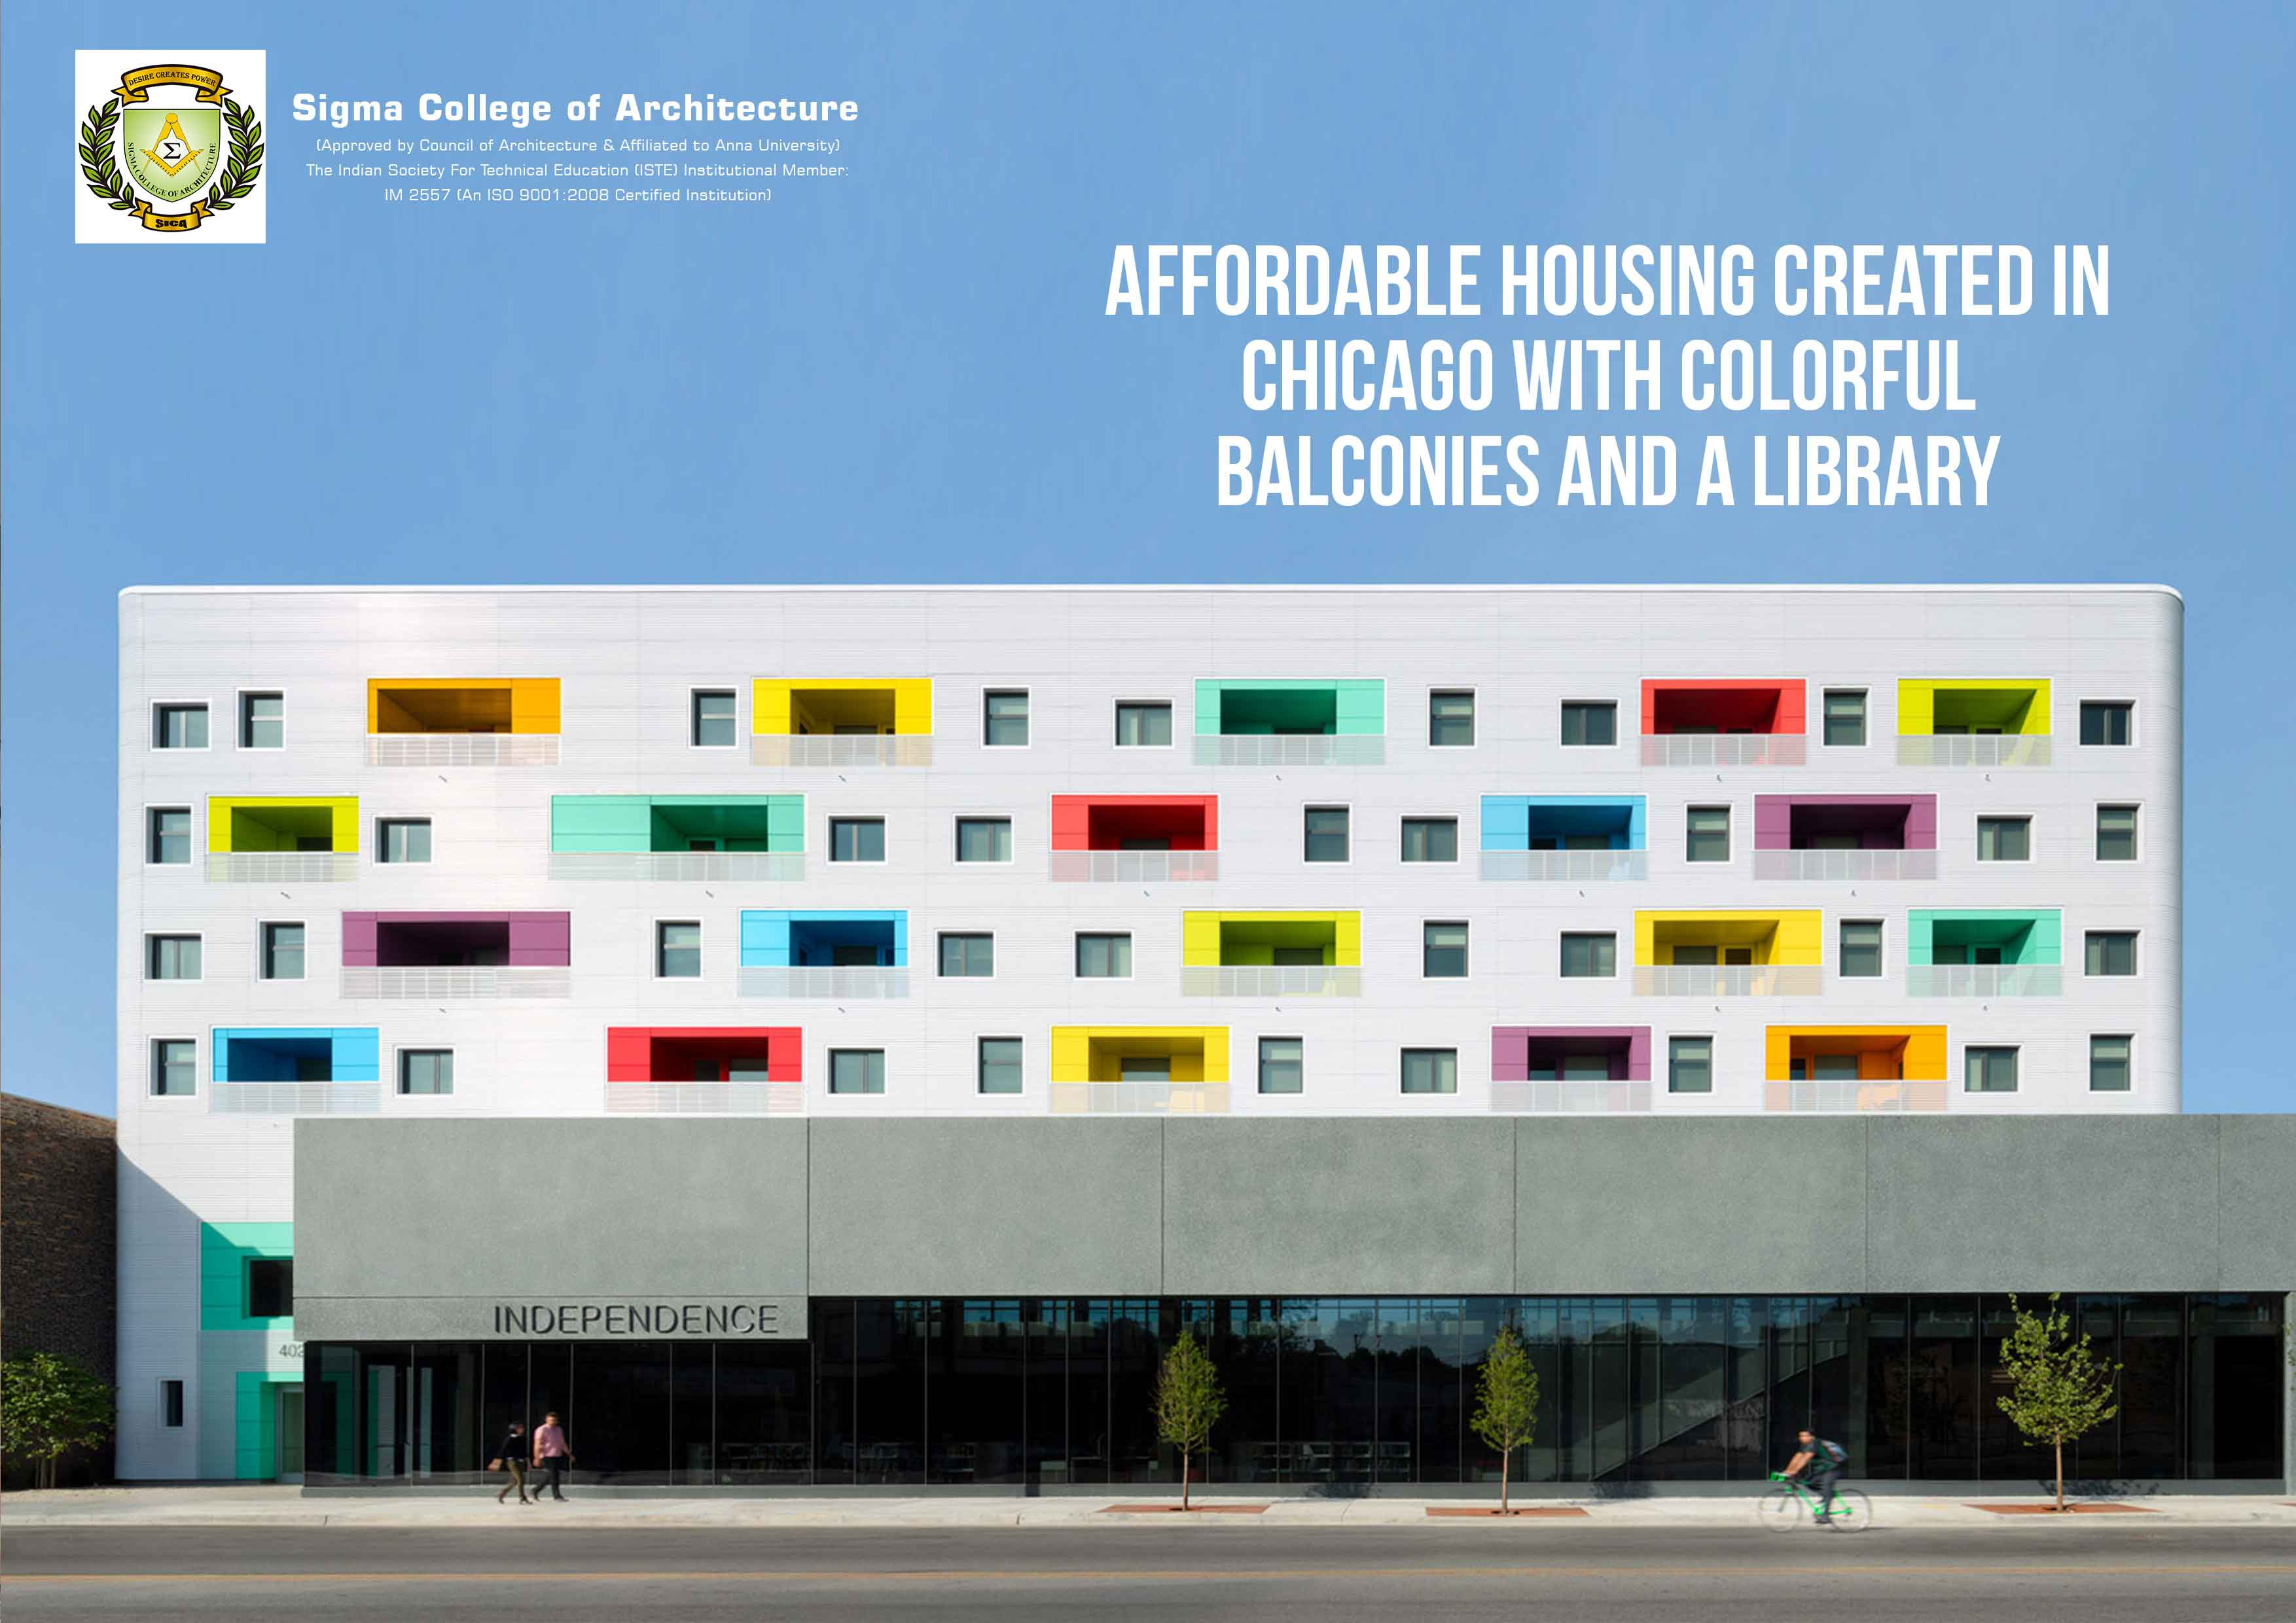 Affordable Housing Created In Chicago With Colorful Balconies And A Library